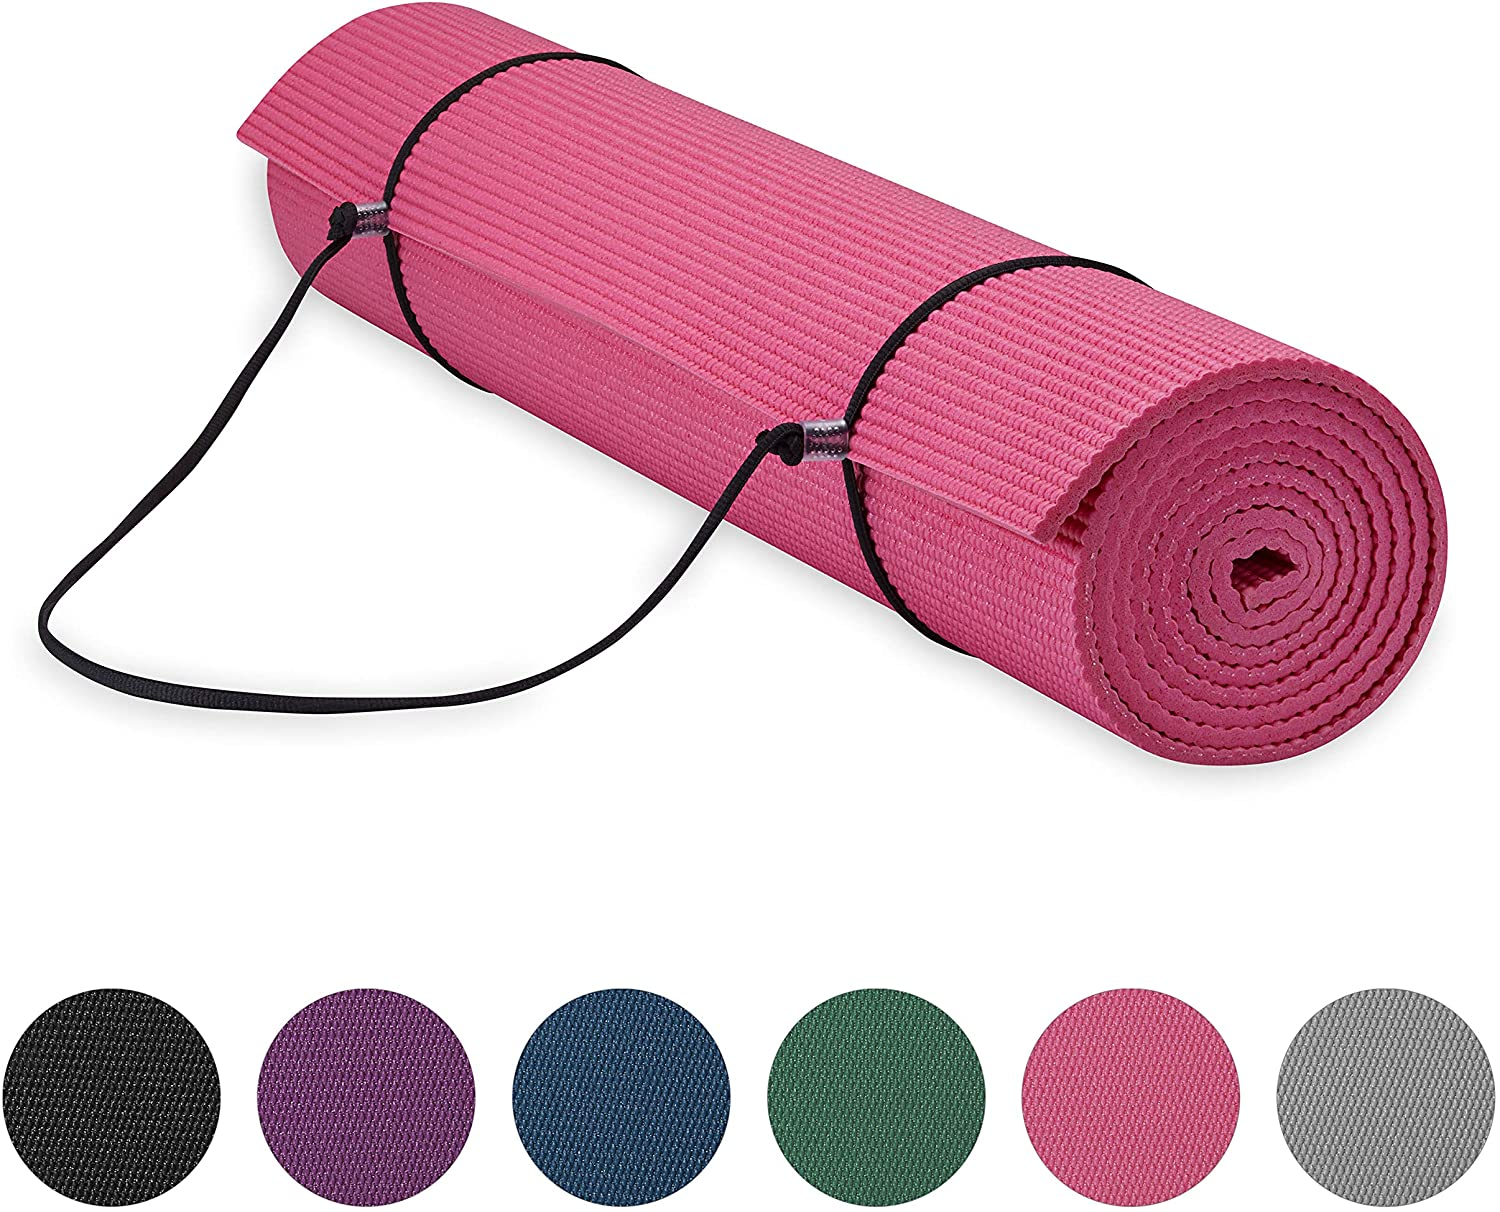 Yoga Mat w/ Carrier Sling Pink